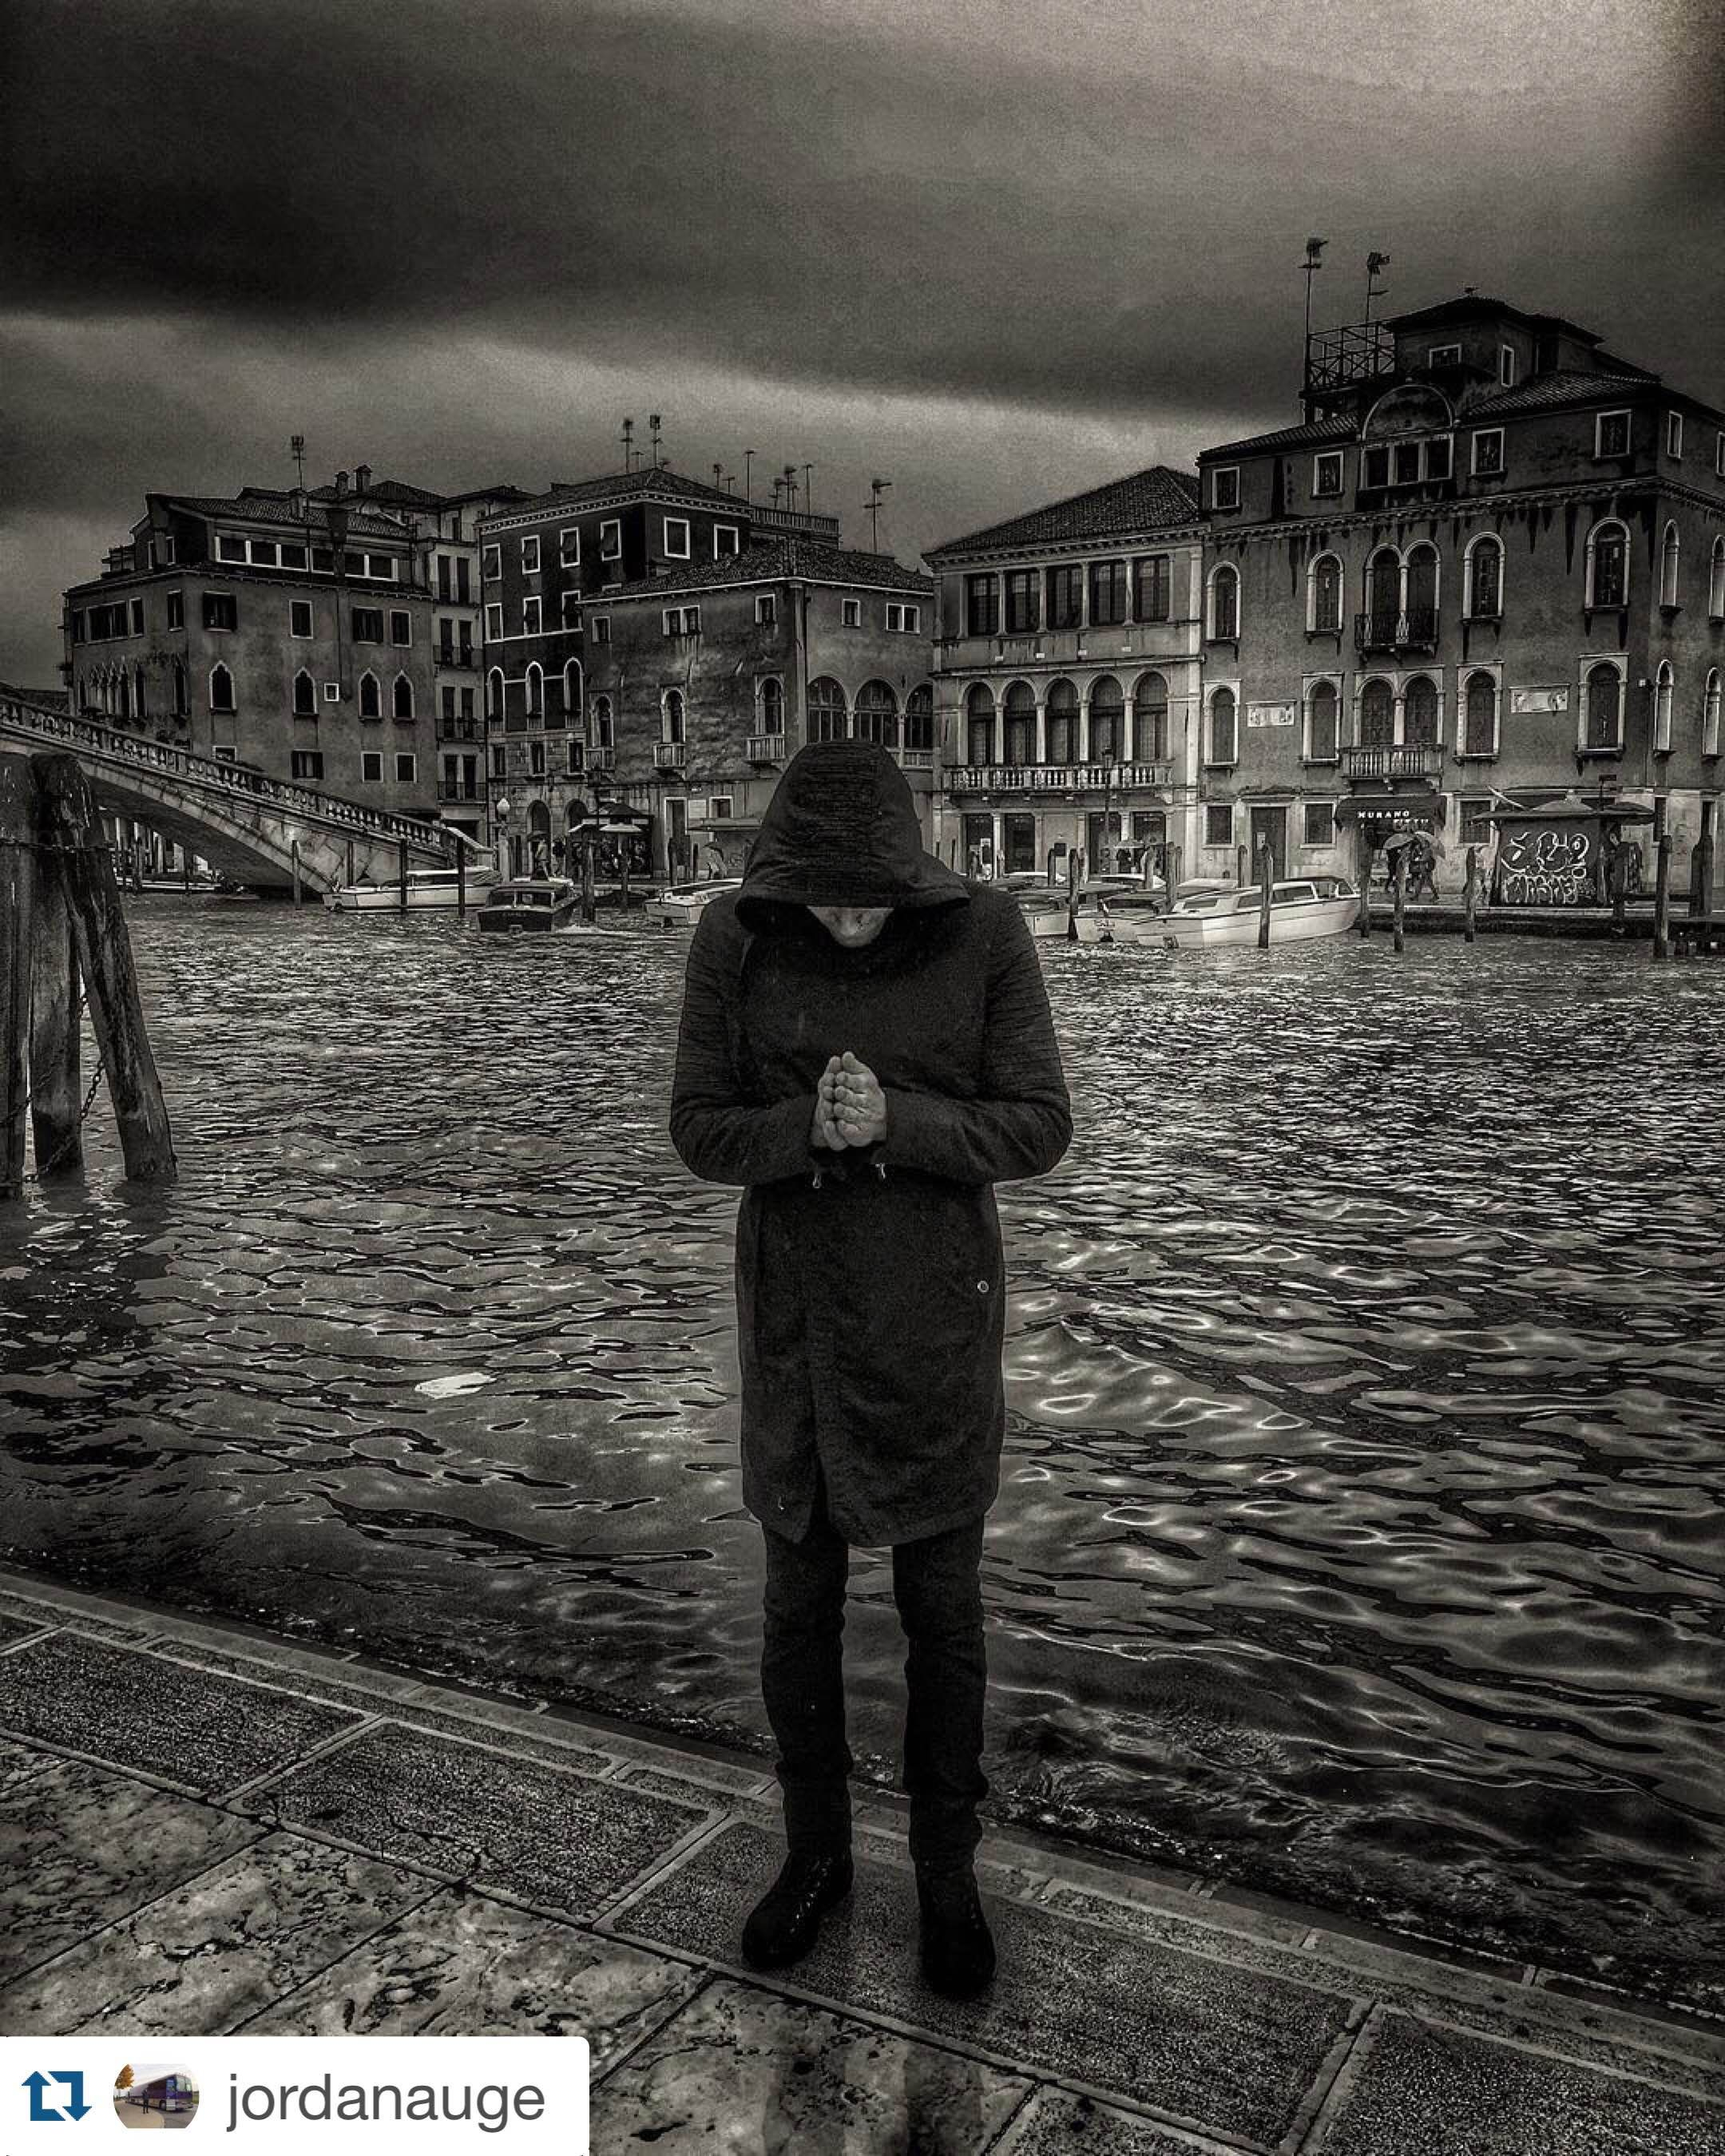 Assassin's Creed x Star Wars crossover anyone? Our Sith Lord coat absolutely fits in in Venice, Italy!   Jacket: Star Wars Collection, Sith Lord: https://www.musterbrand.com/collections/star-wars